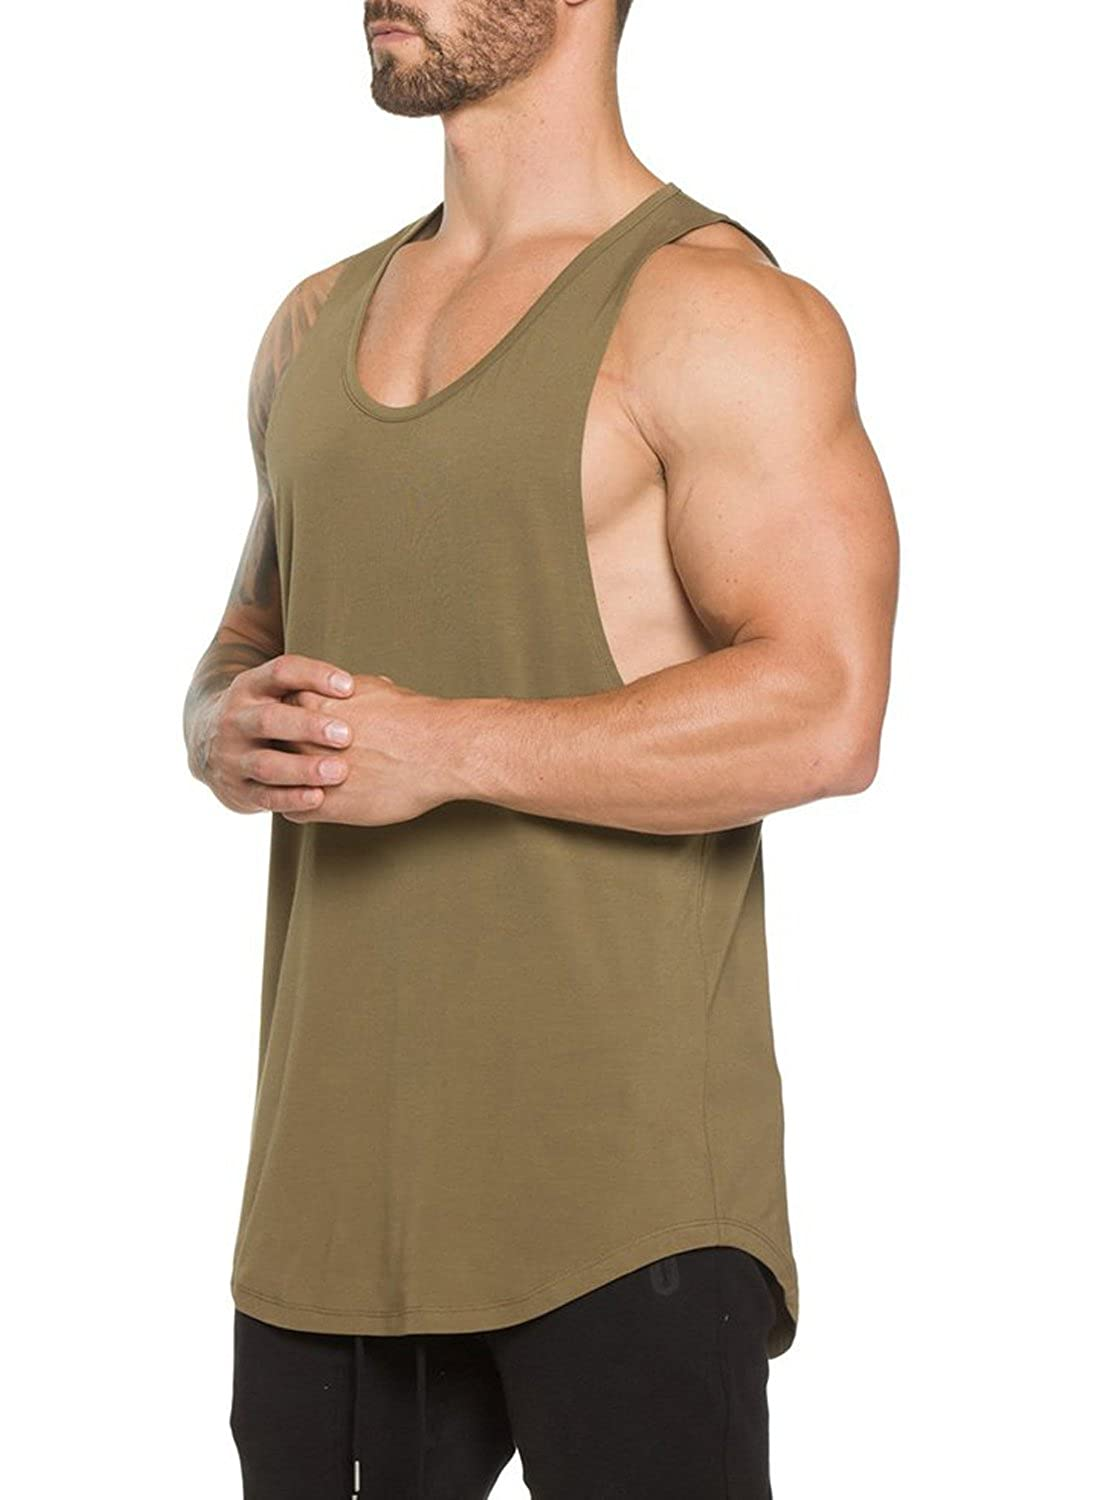 8bd9553f359721 Amazon.com  Ouber Men s Gym Bodybuilding Workout Stringer Tank Top  Clothing